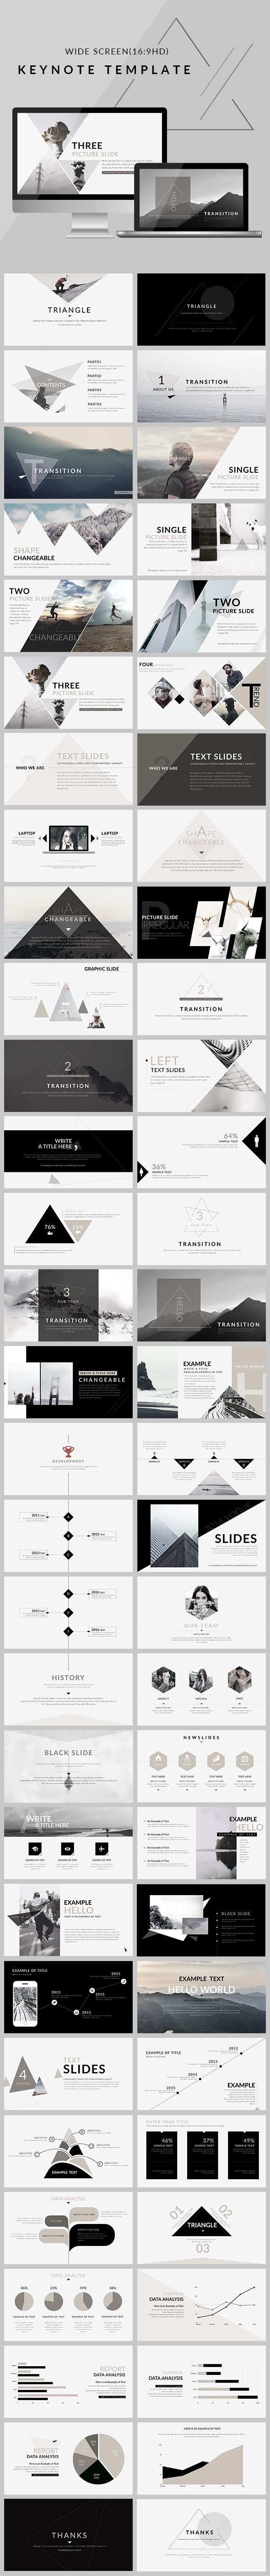 Simple Line Icons (Free PSD, Webfont) by GraphicBurger , via…